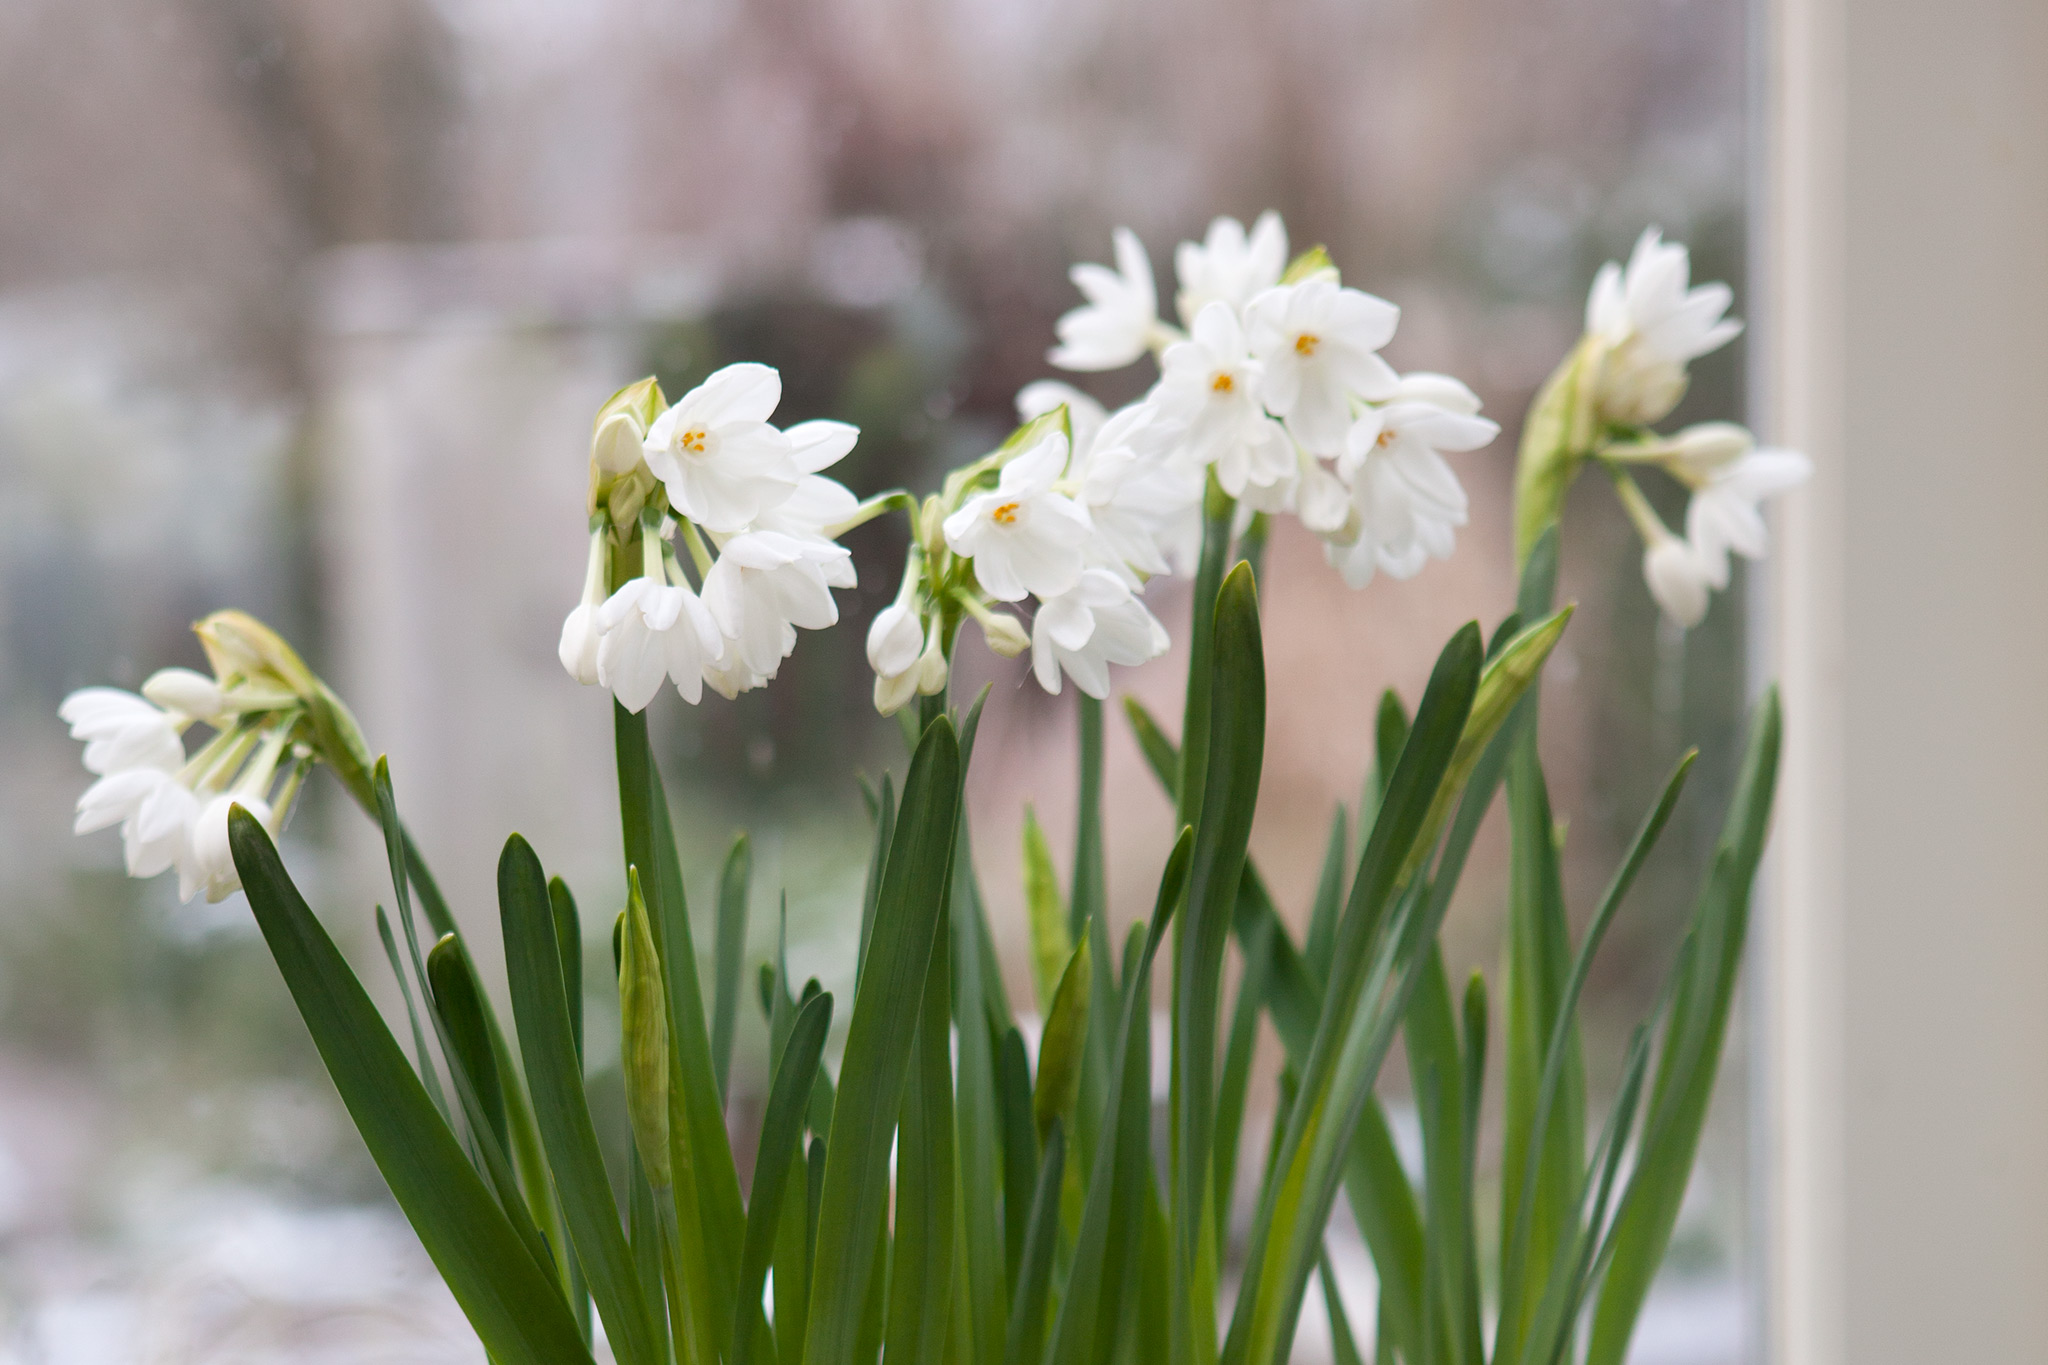 paperwhite-narcissi-14